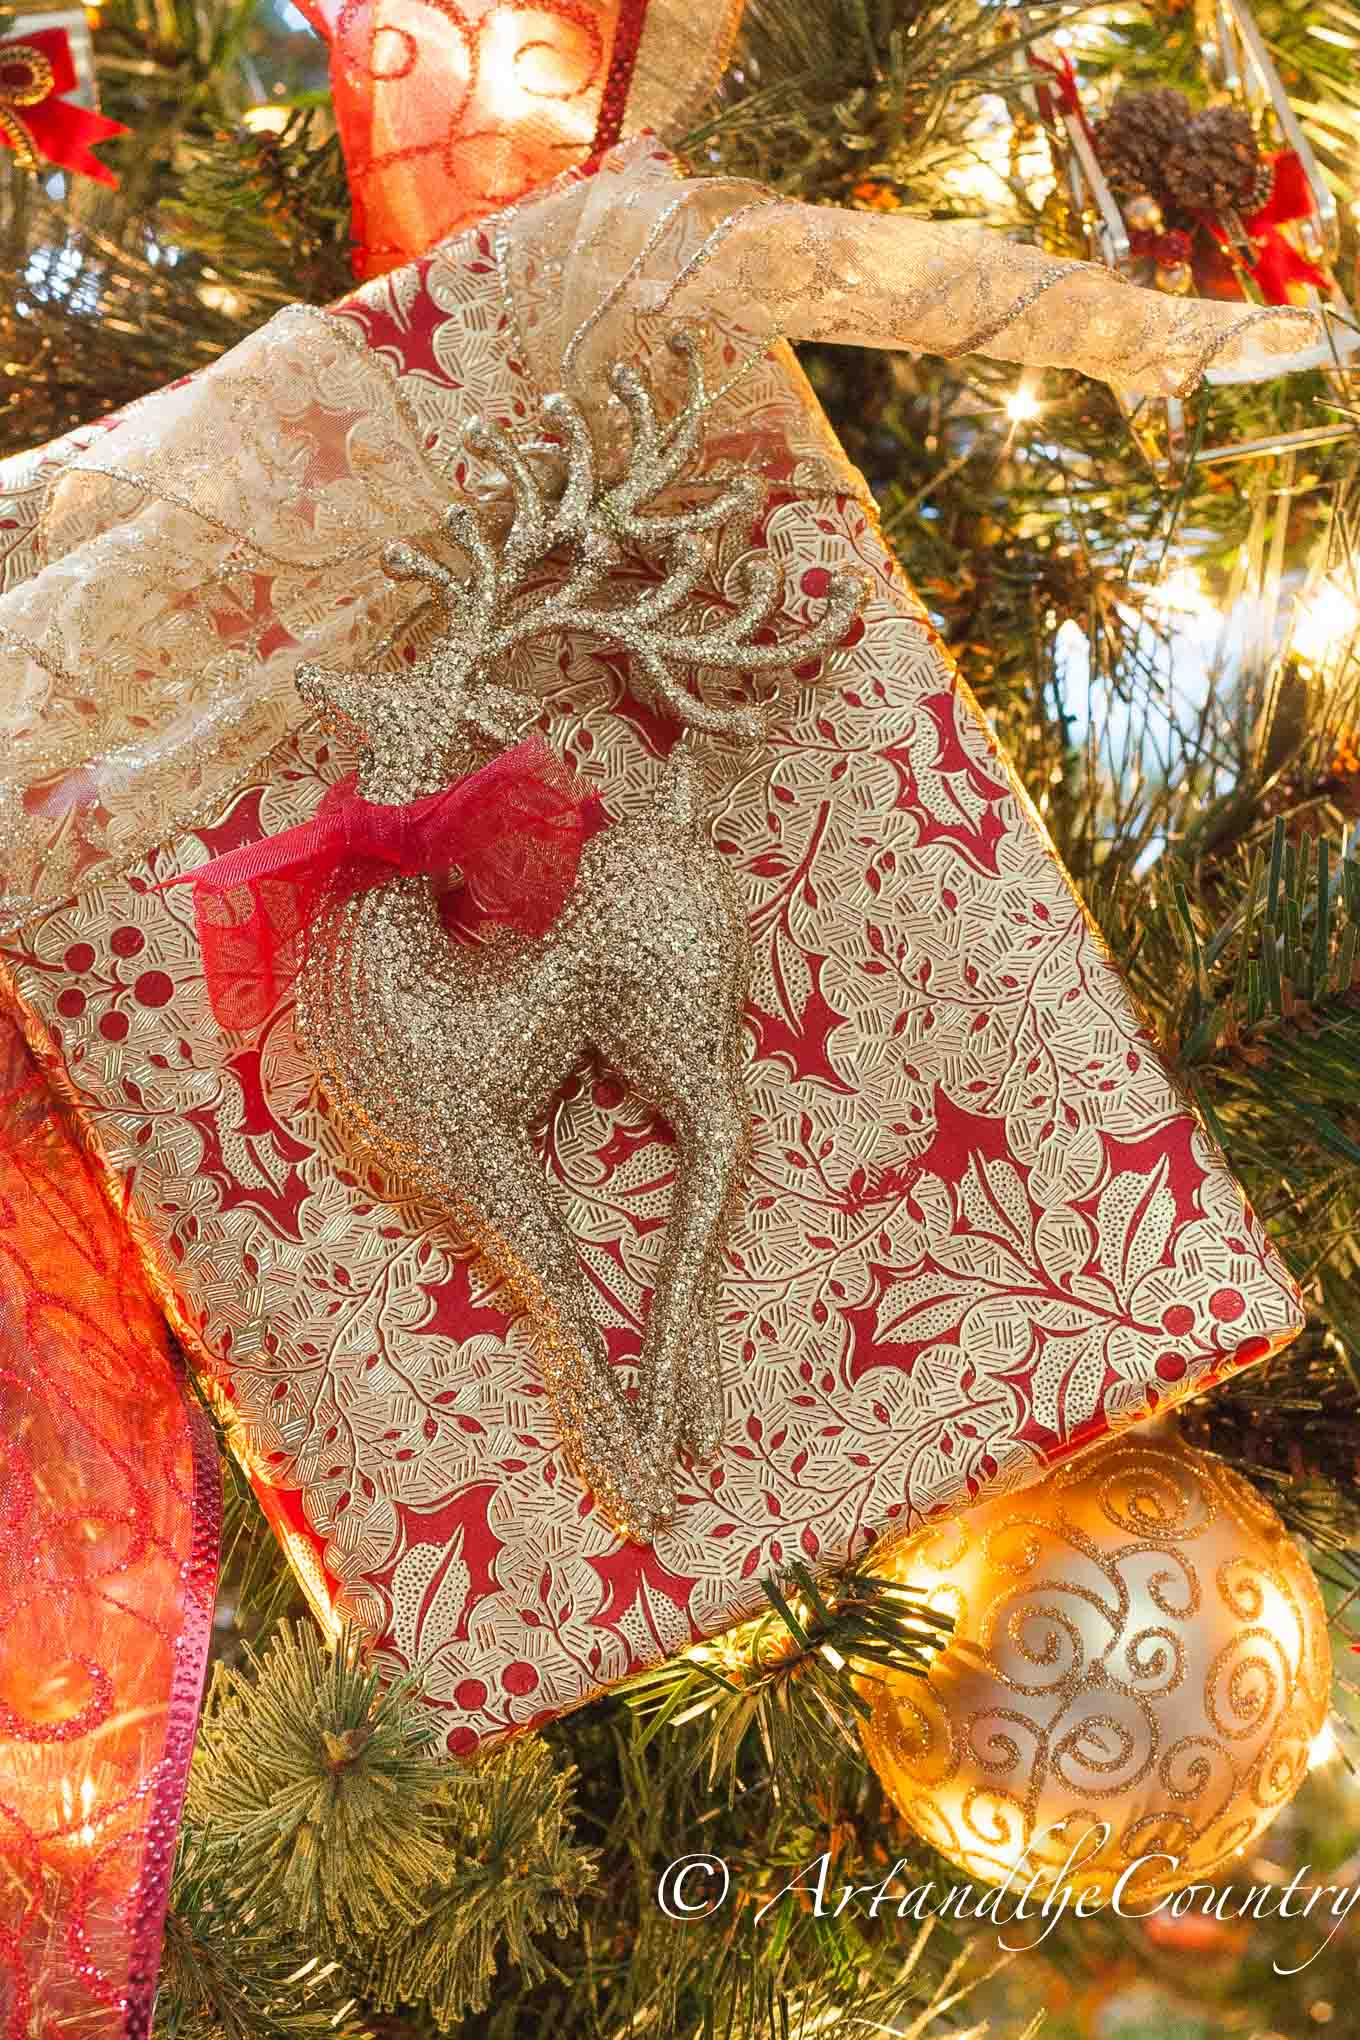 Christmas gift wrapped in red and gold paper and ribbon with gold reindeer ornament.